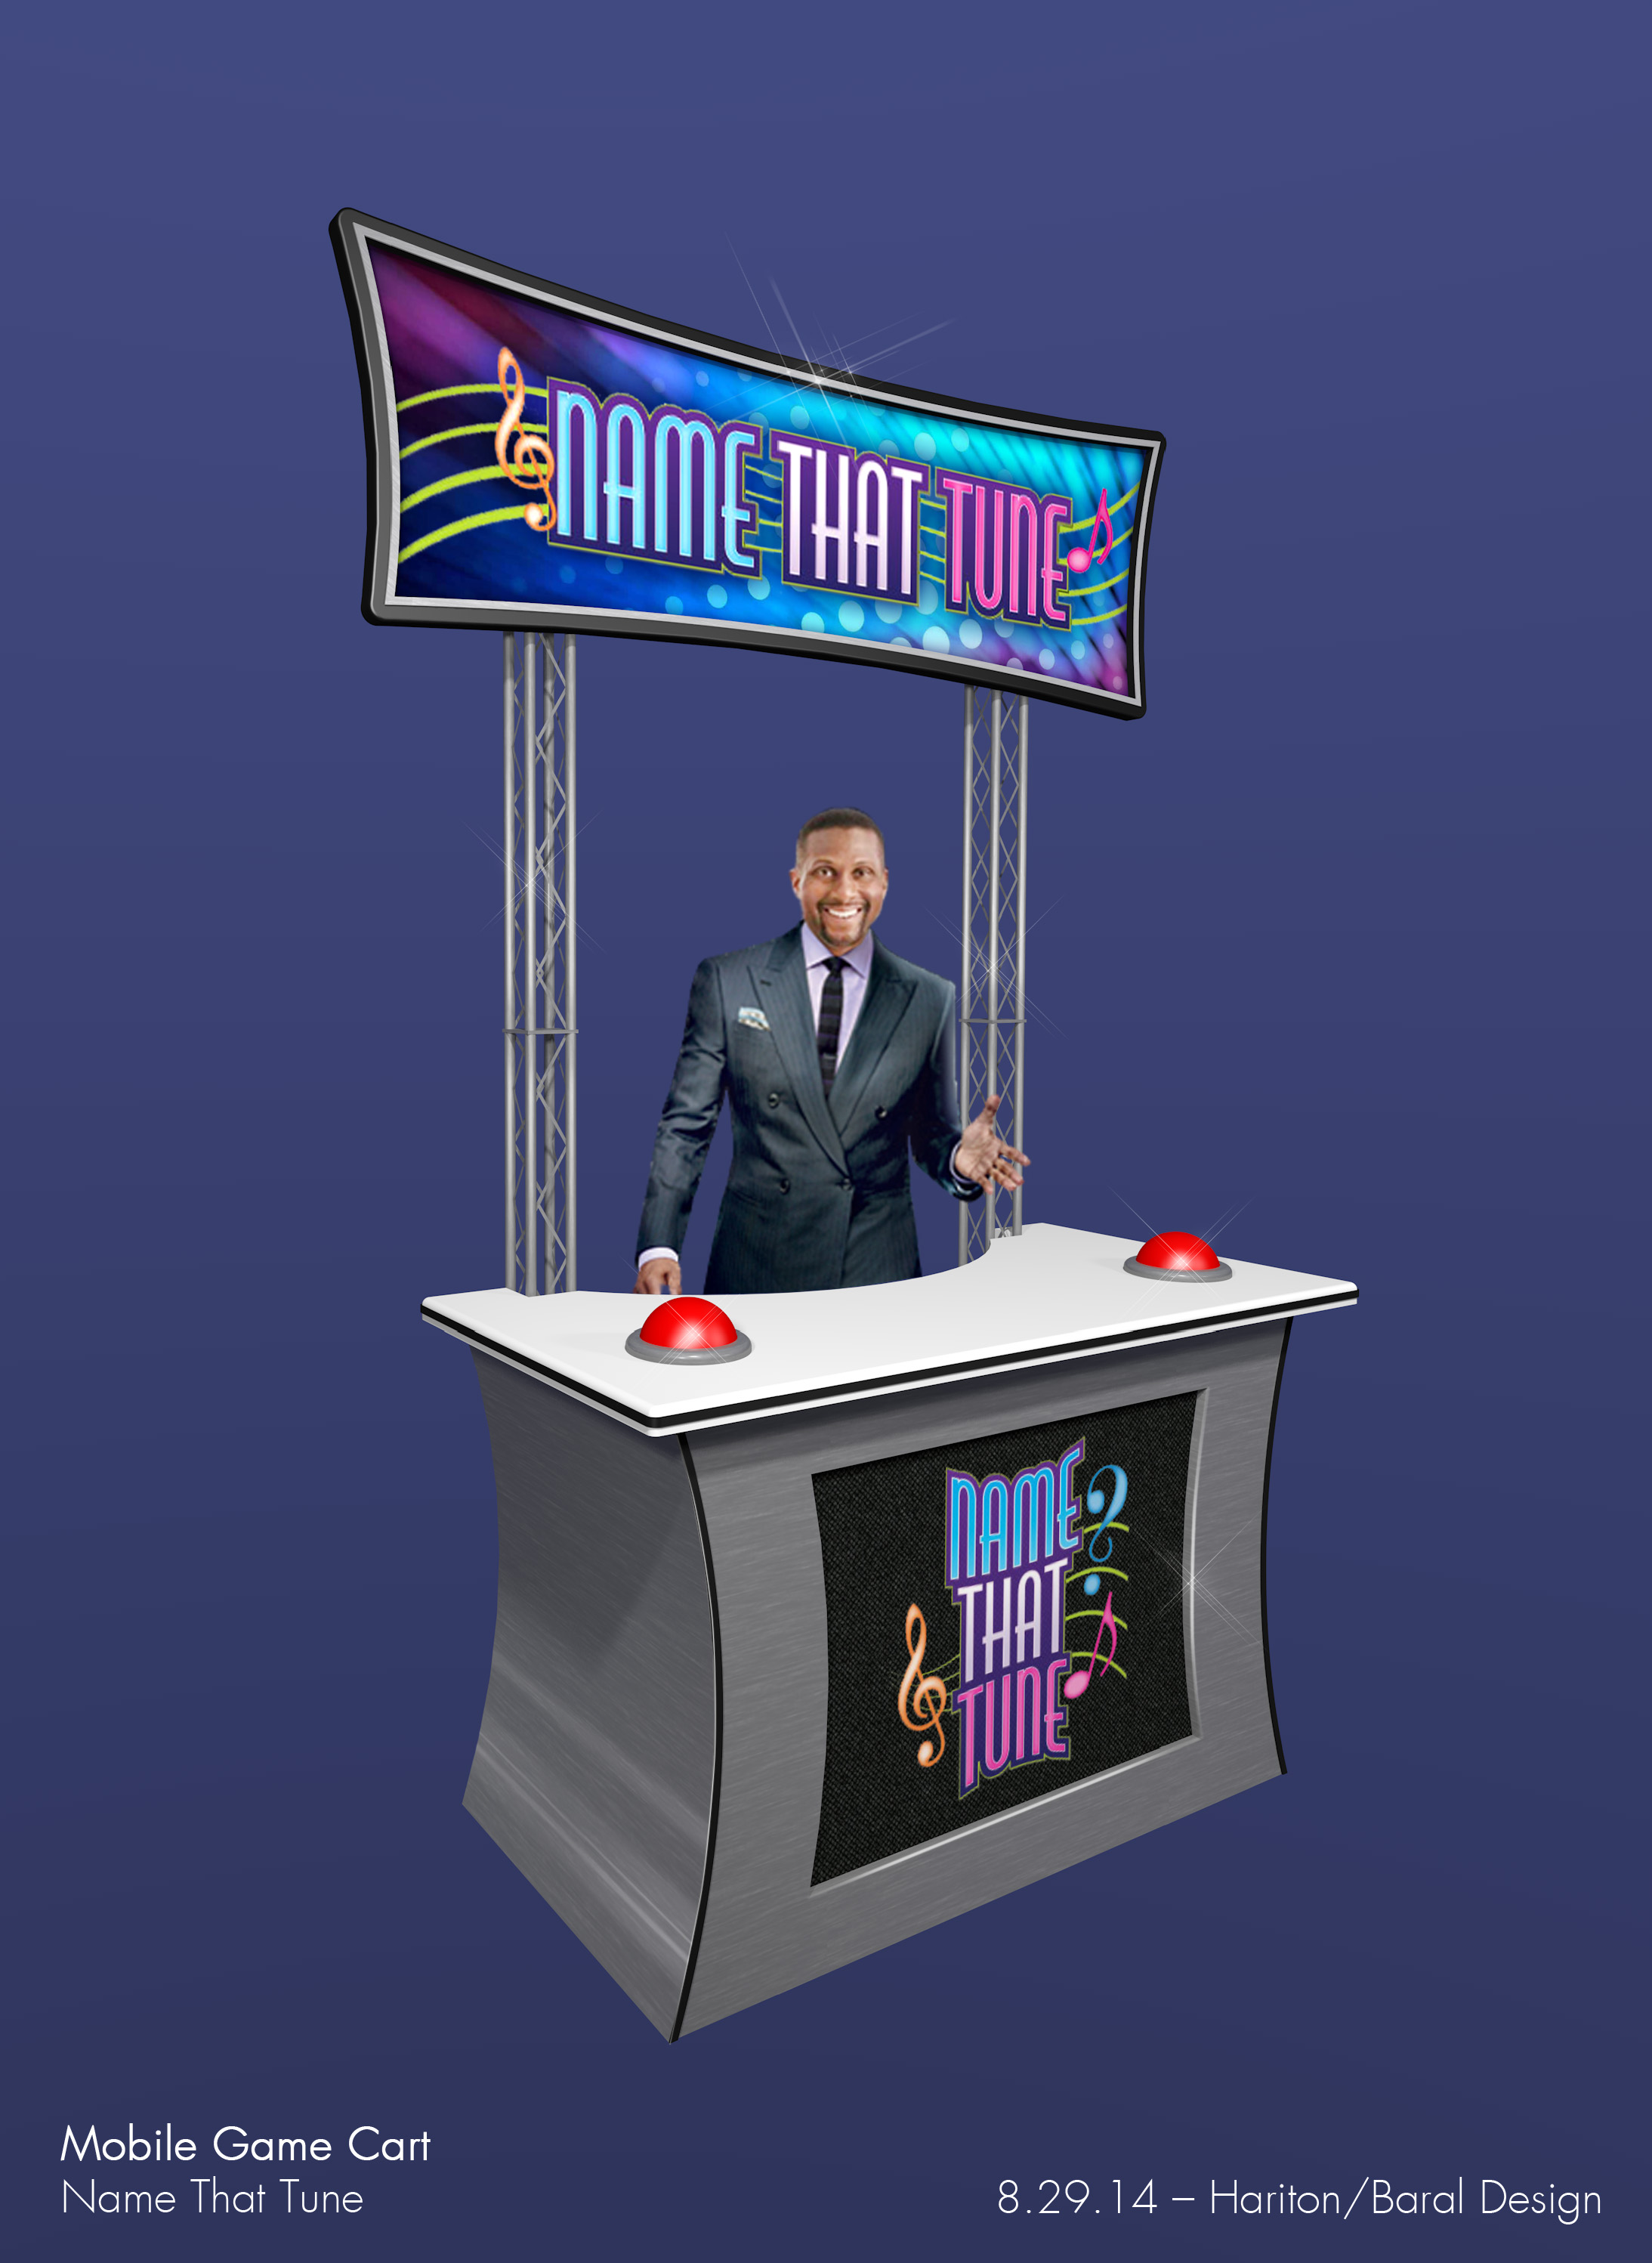 The mobile game cart was used throughout the ships as an interactive way to recruit contestants for the game show via on-the-spot head-to-head song battles.